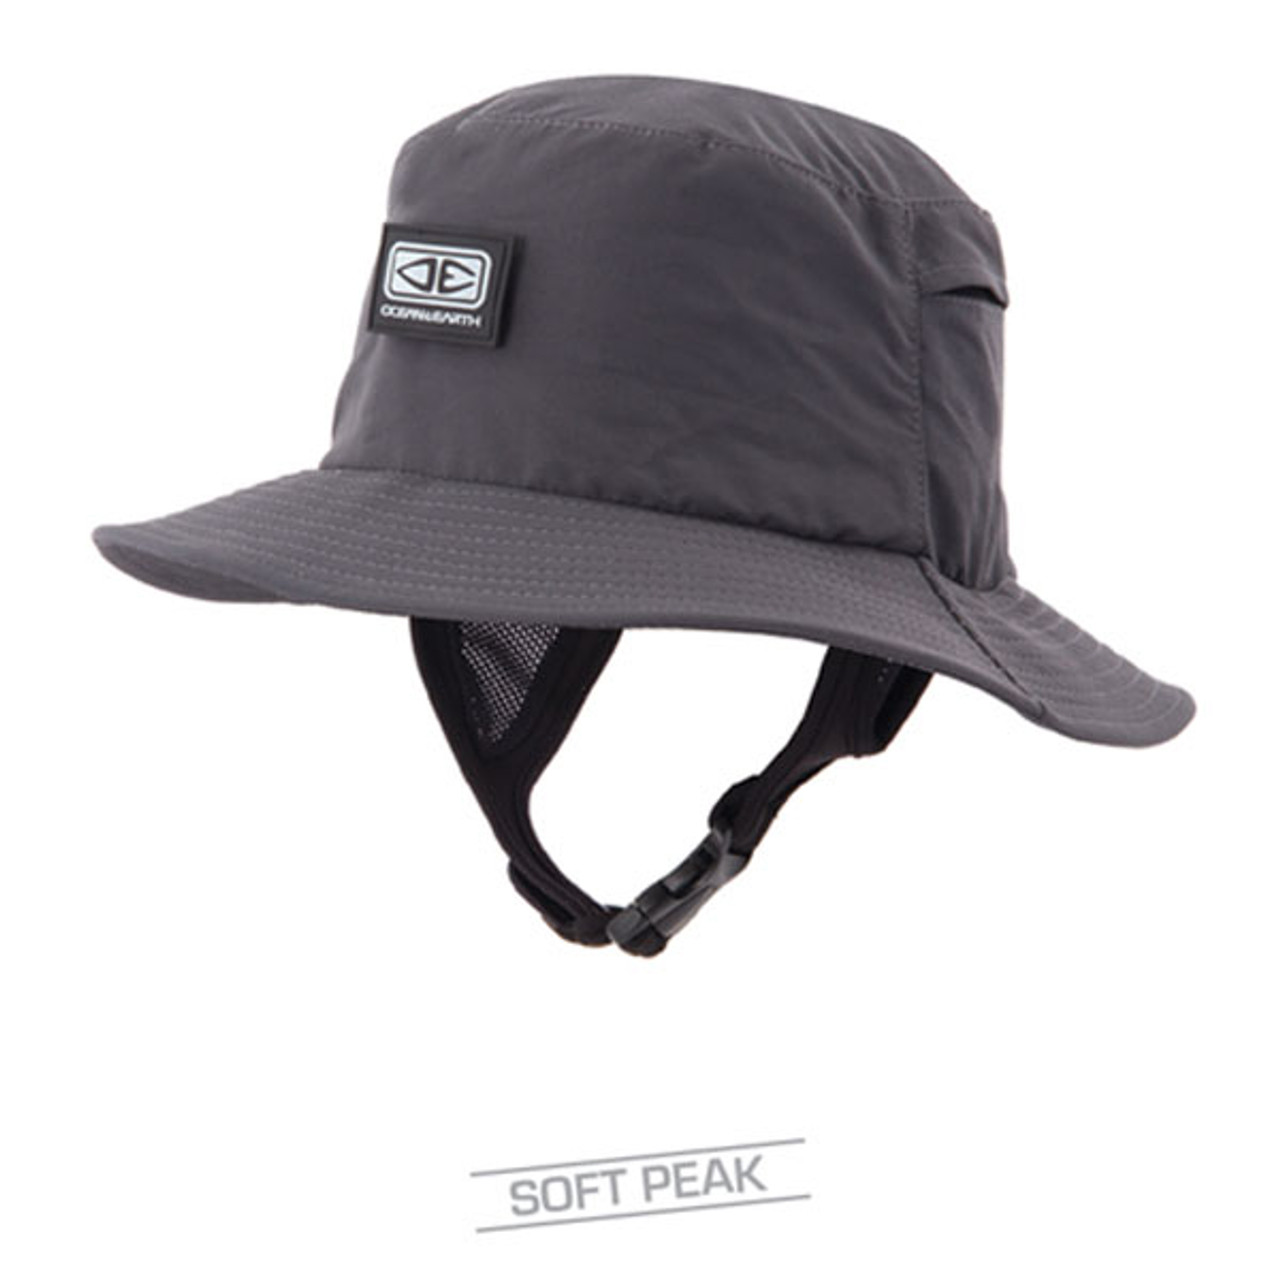 65e9a86a113 Men s Bingin Soft Peak Surf Hat